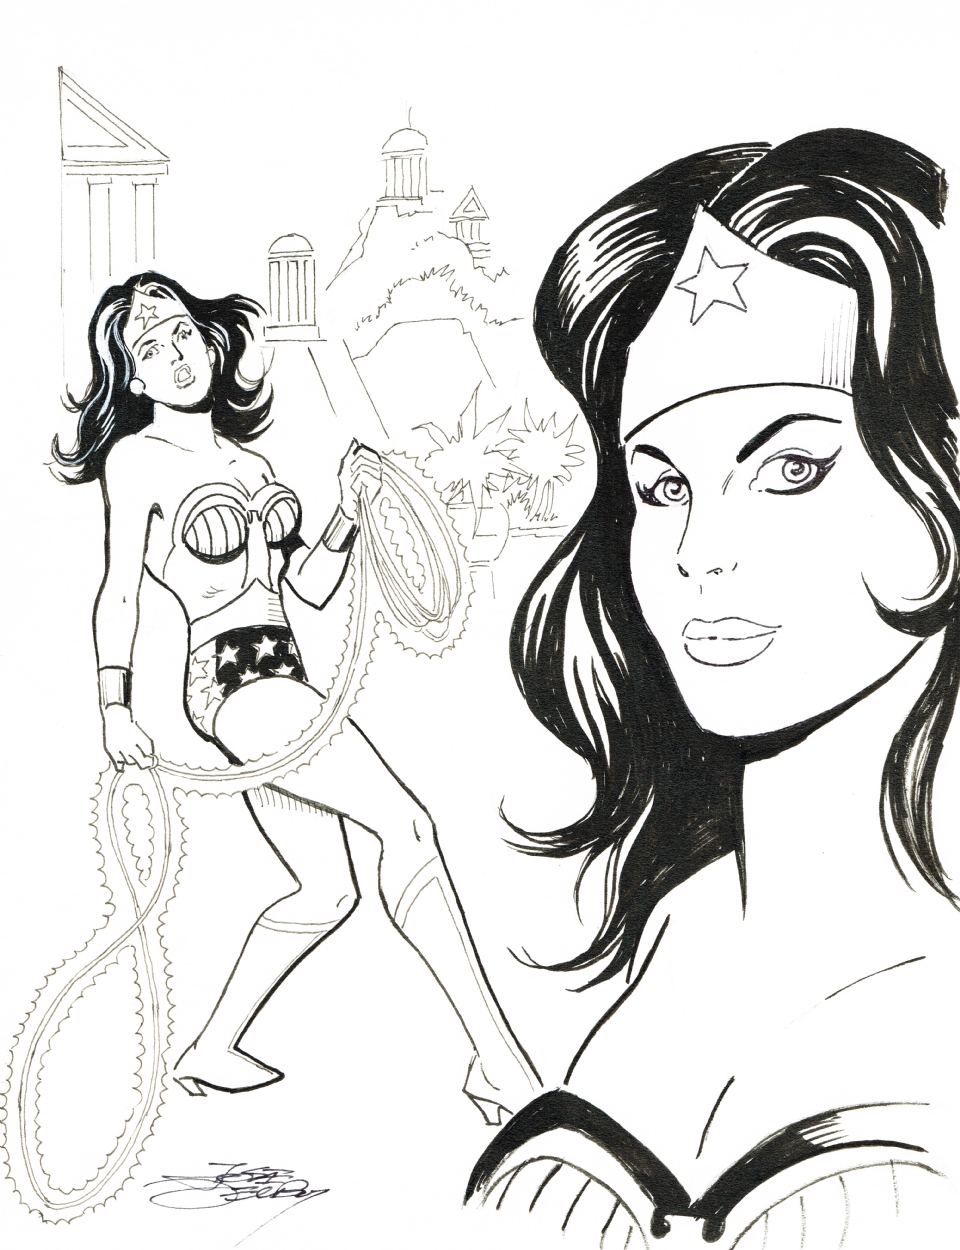 Wonder Woman commission by Jose Delbo.